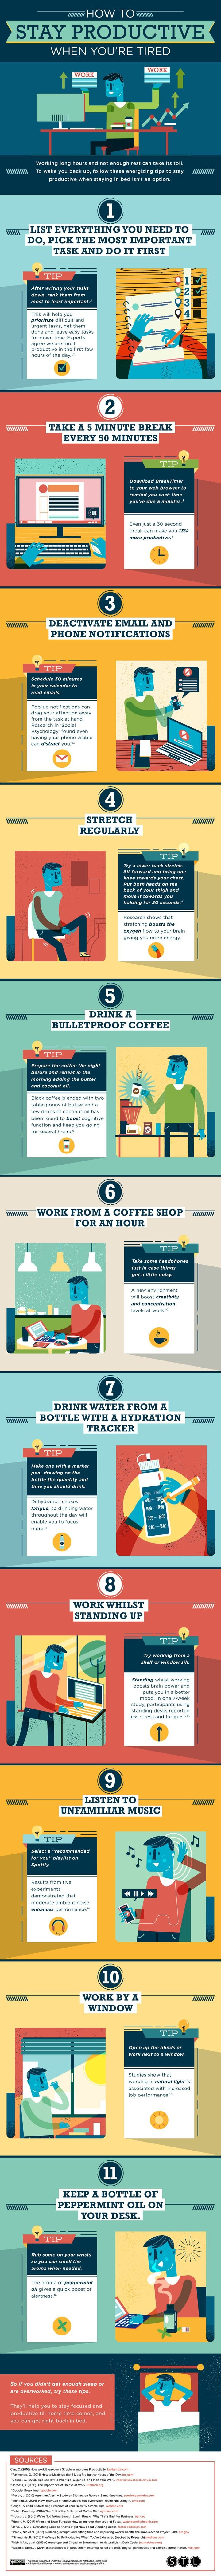 Tips for Entrepreneurs: 11 Ways to Stay Productive When You're Tired #Infographic #Startup #Entrepreneur